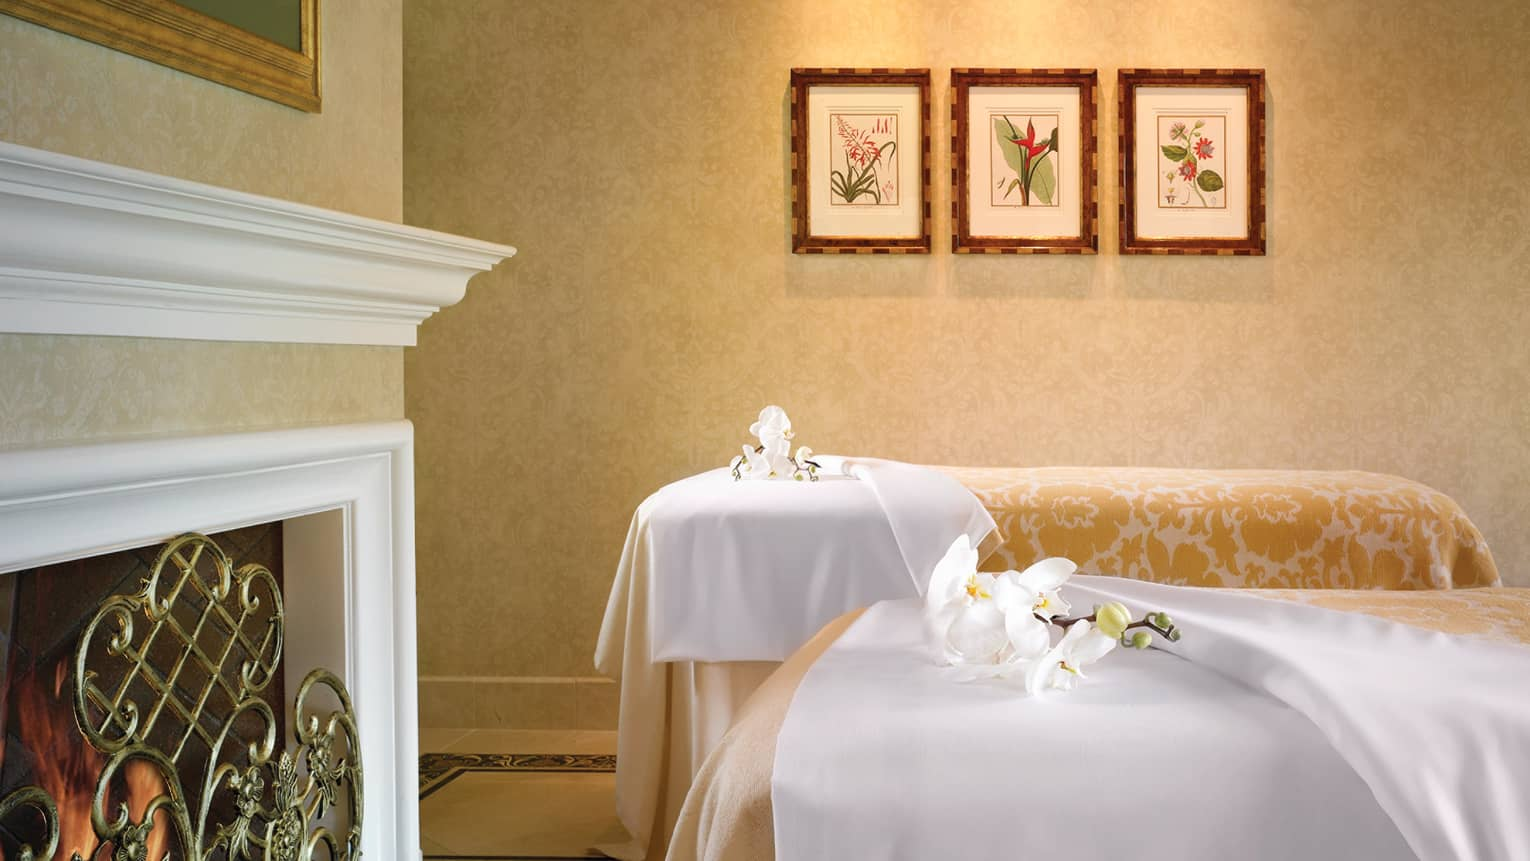 Private spa suite, two massage beds with white sheets, gold floral blankets, fresh orchids